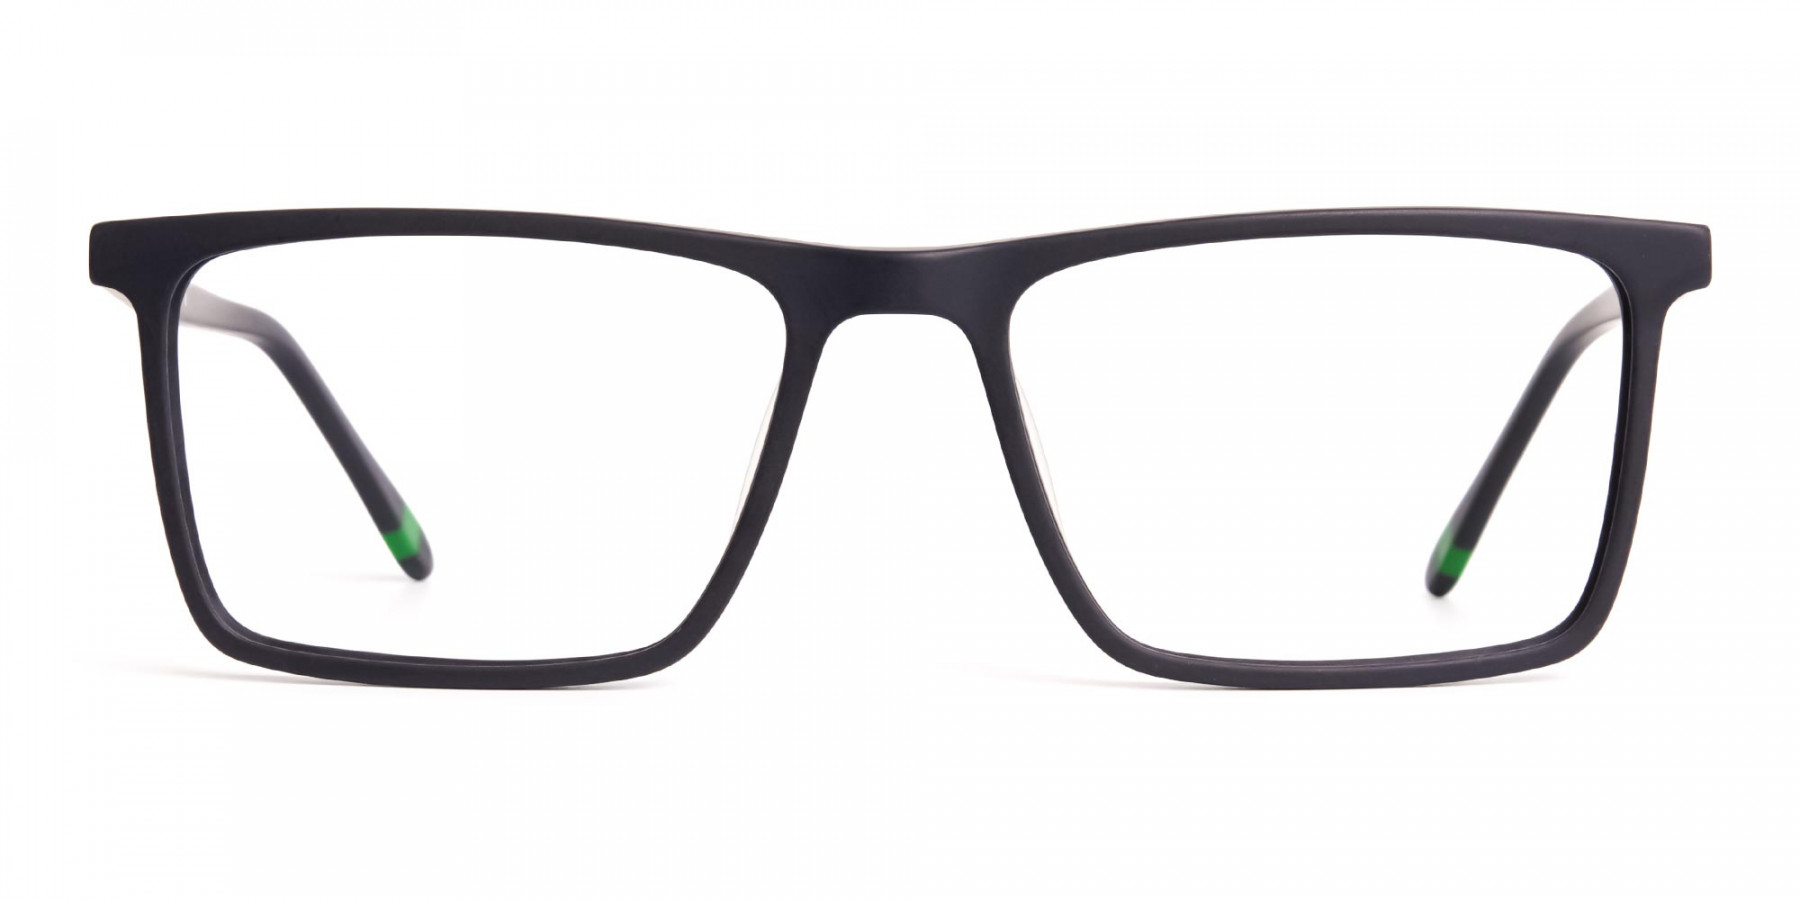 matte-grey-full-rim-rectangular-glasses-frames-1